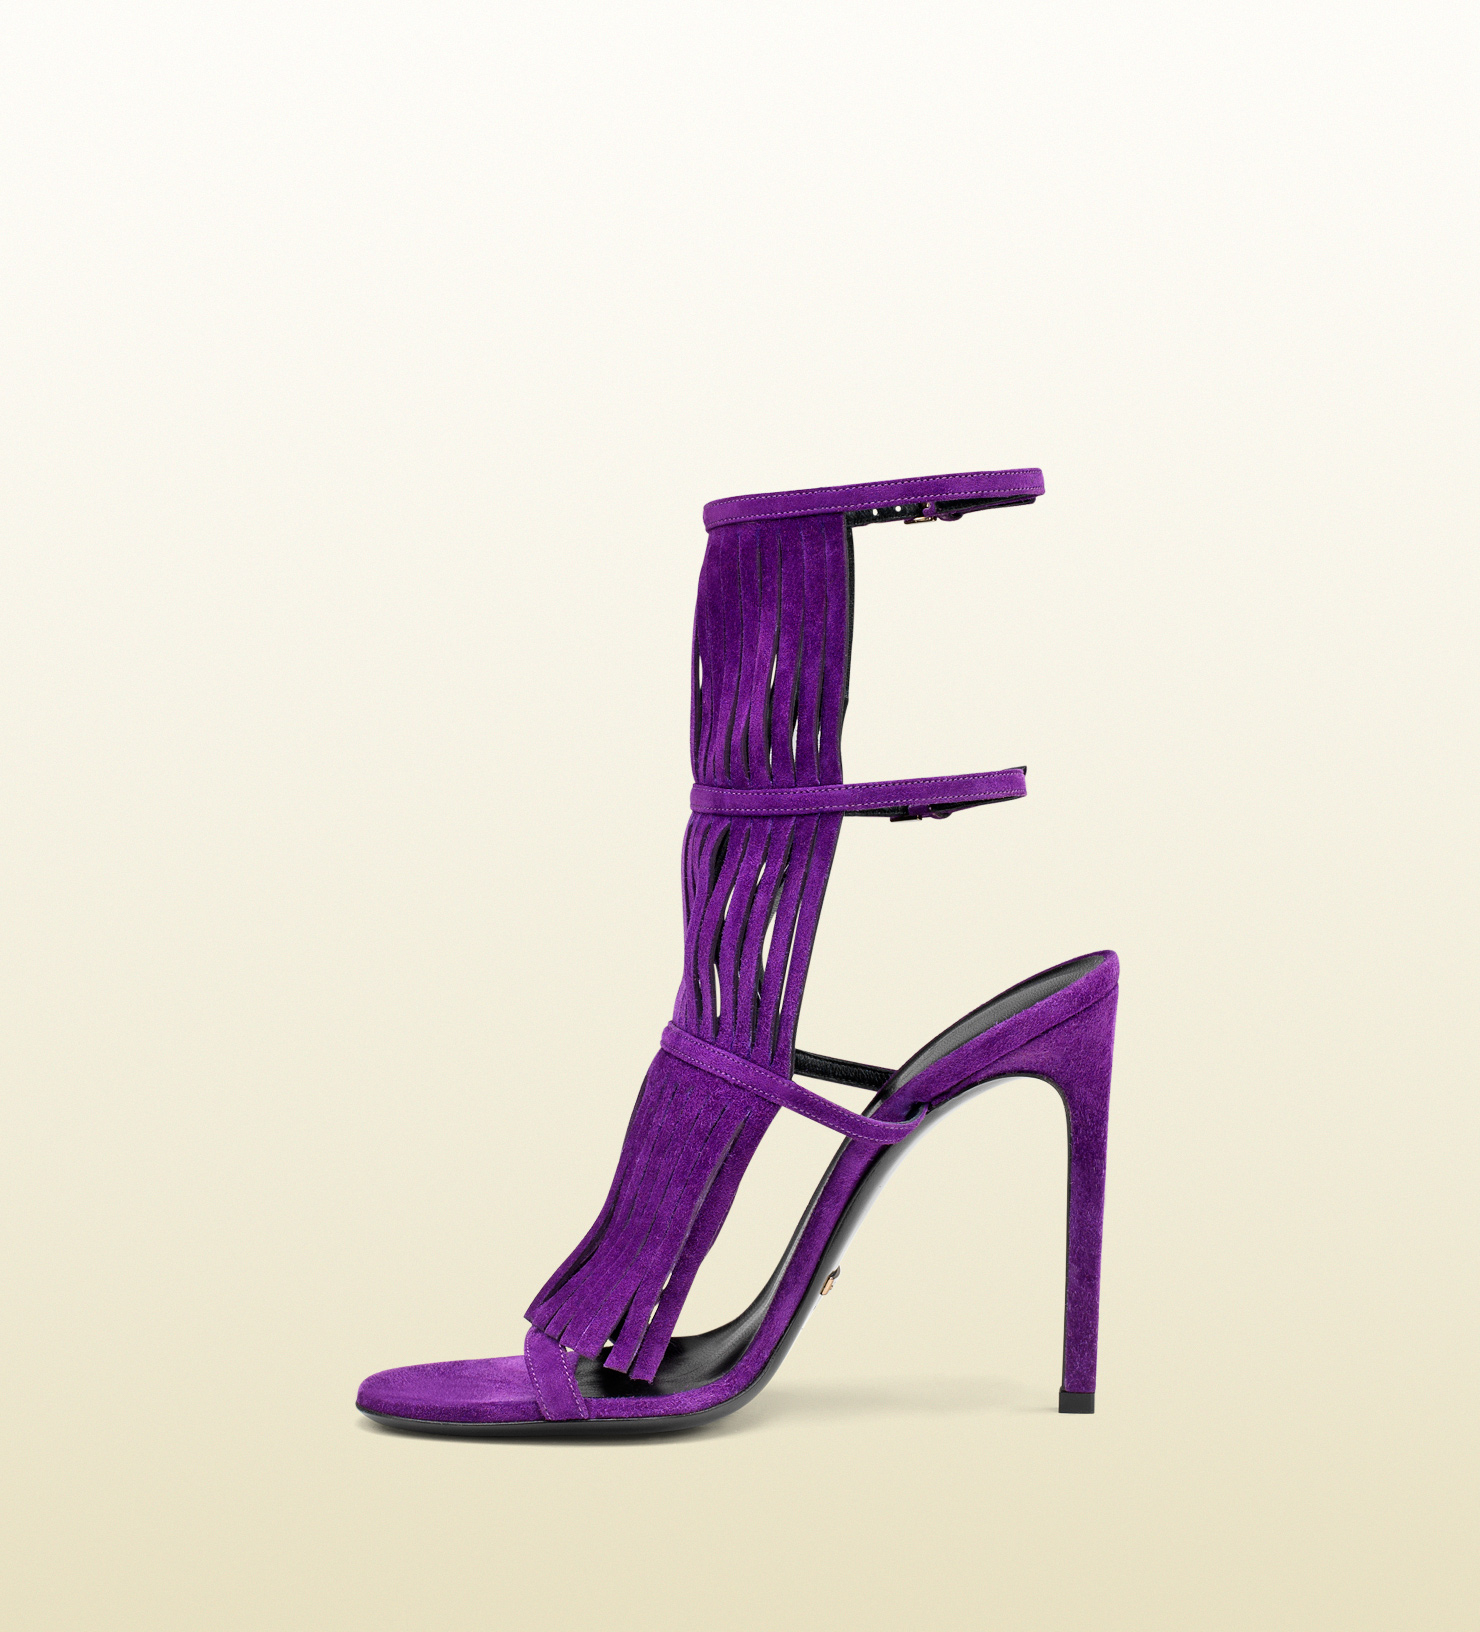 Gucci Becky Suede Fringed High Heel Sandal in Purple | Lyst